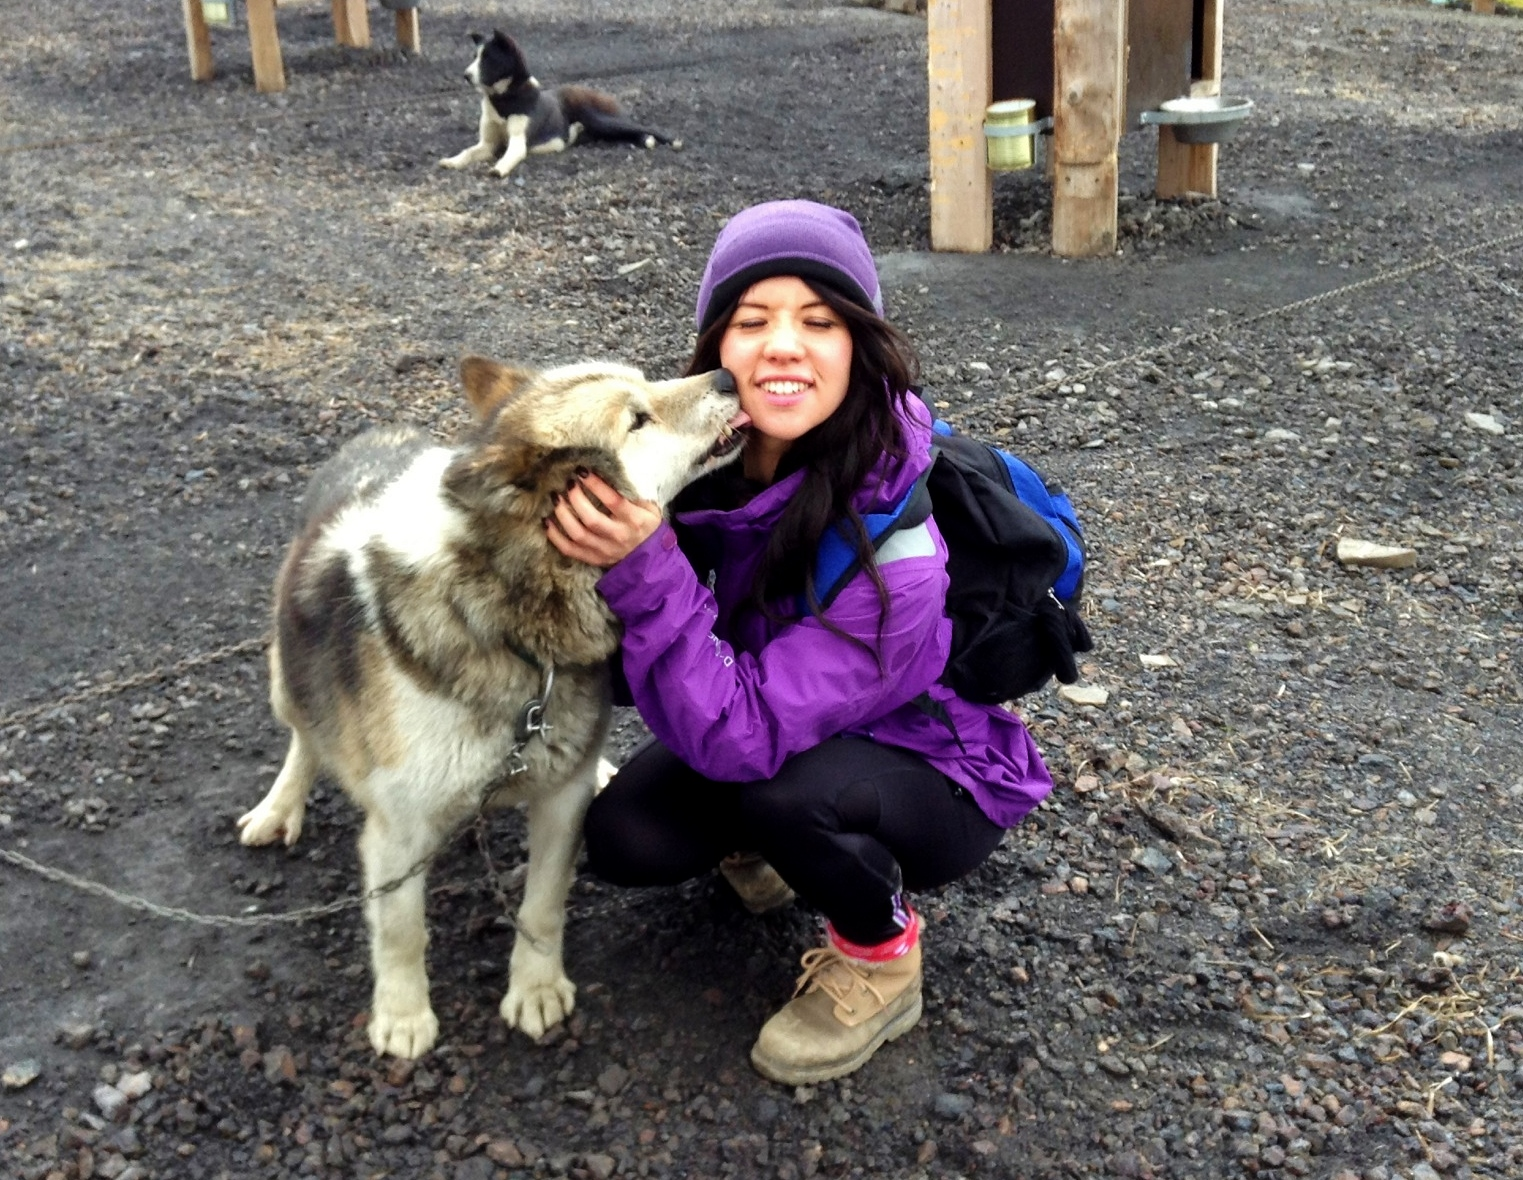 Kiss from a husky dog